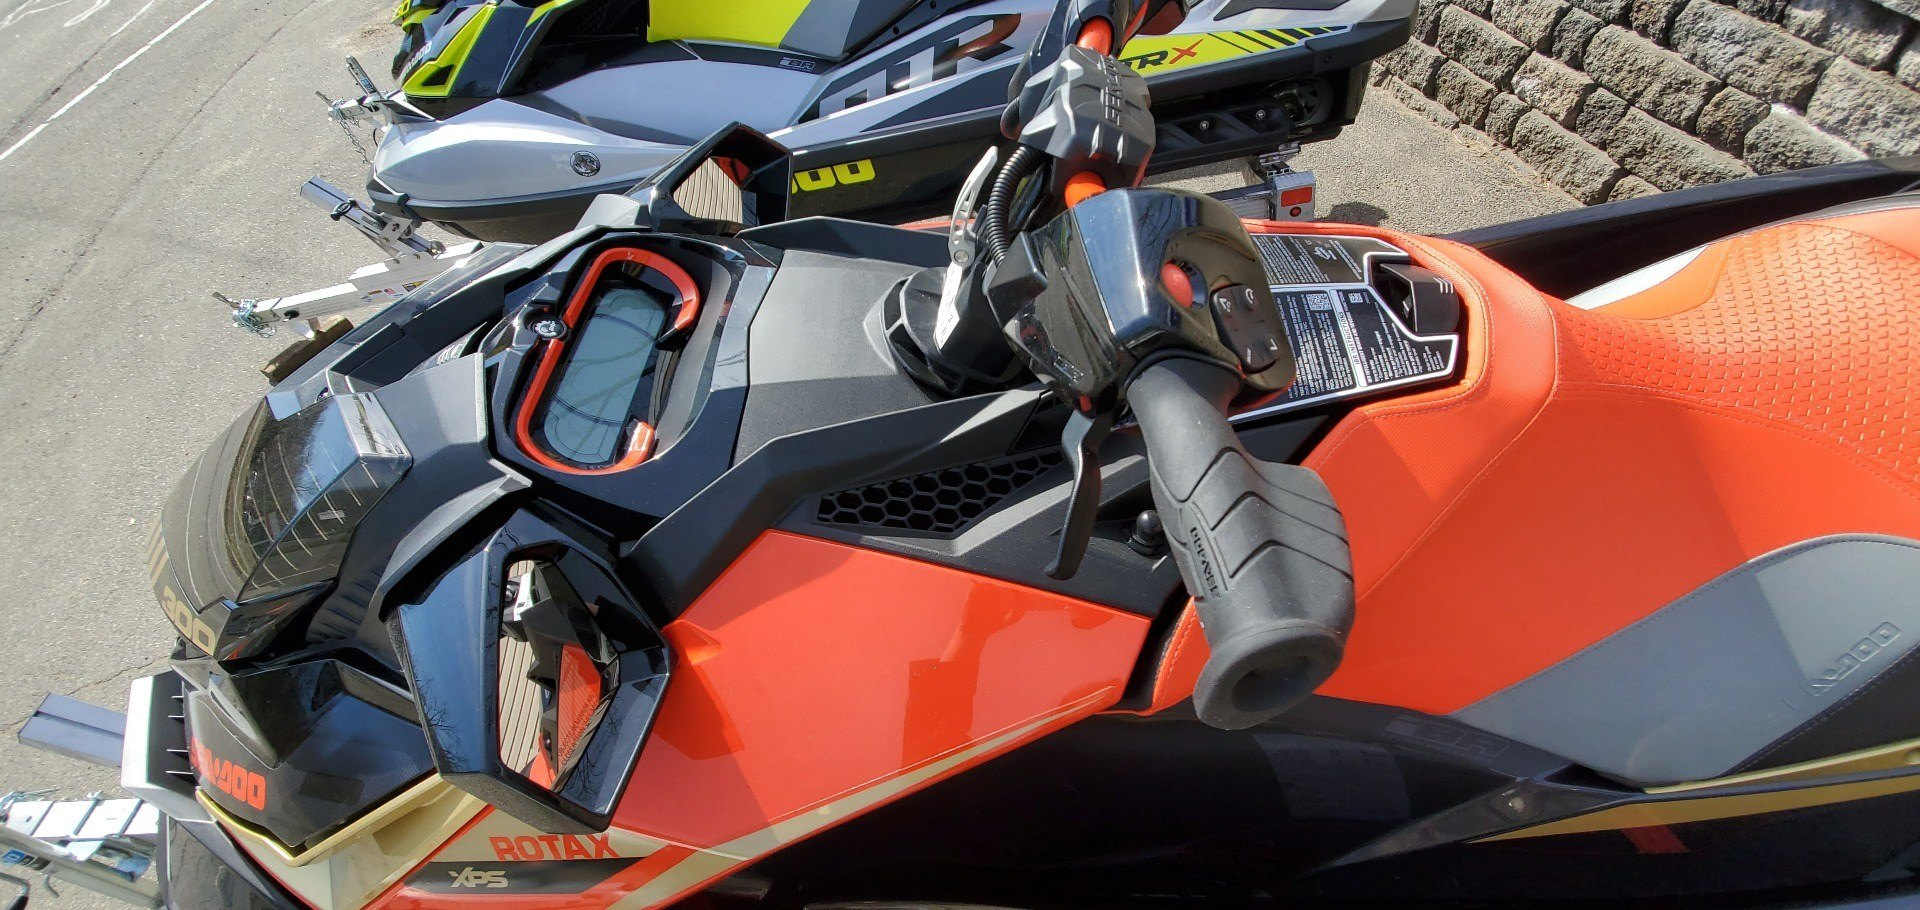 2019 Sea-Doo RXP-X 300 iBR in Ledgewood, New Jersey - Photo 6